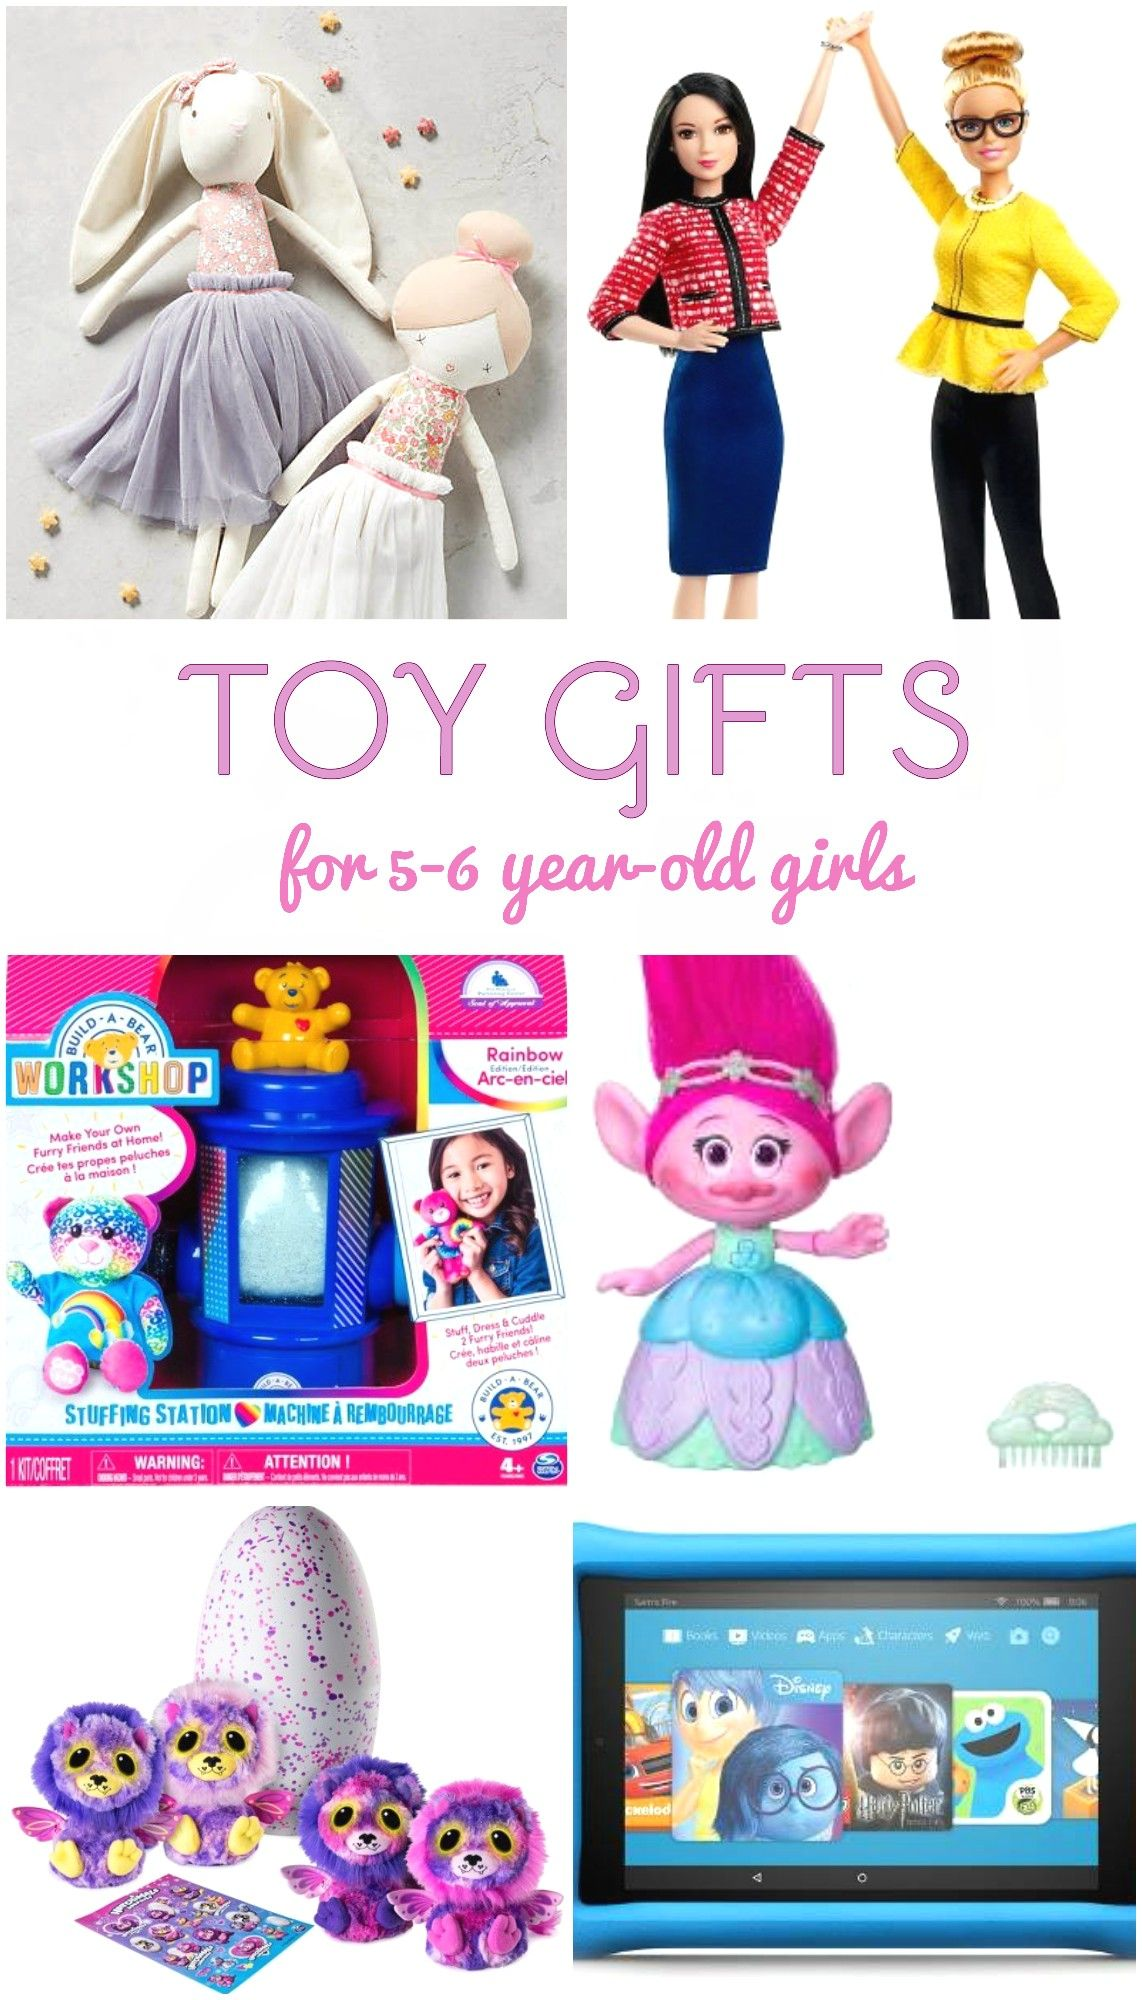 Gift Ideas For 5 To 6 Year Old Girls Top Christmas Gifts